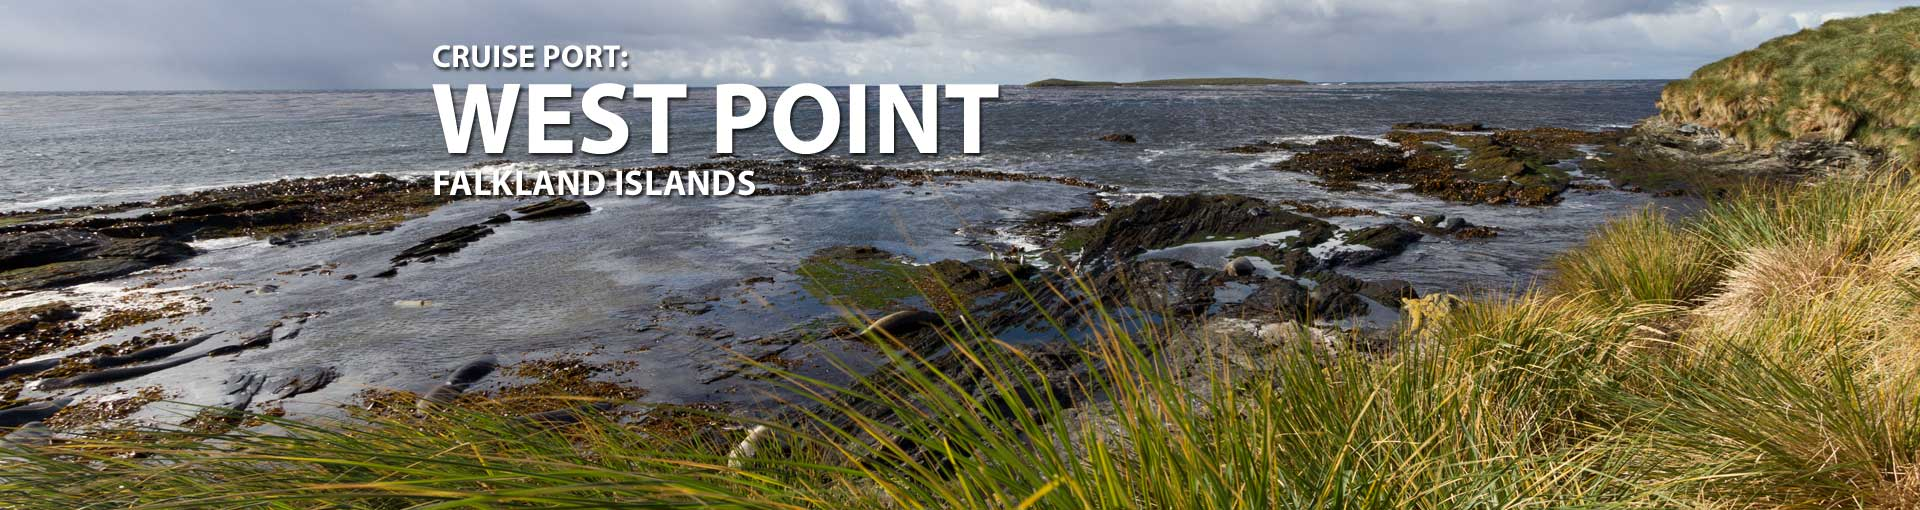 Cruises to West Point, Falkland Islands